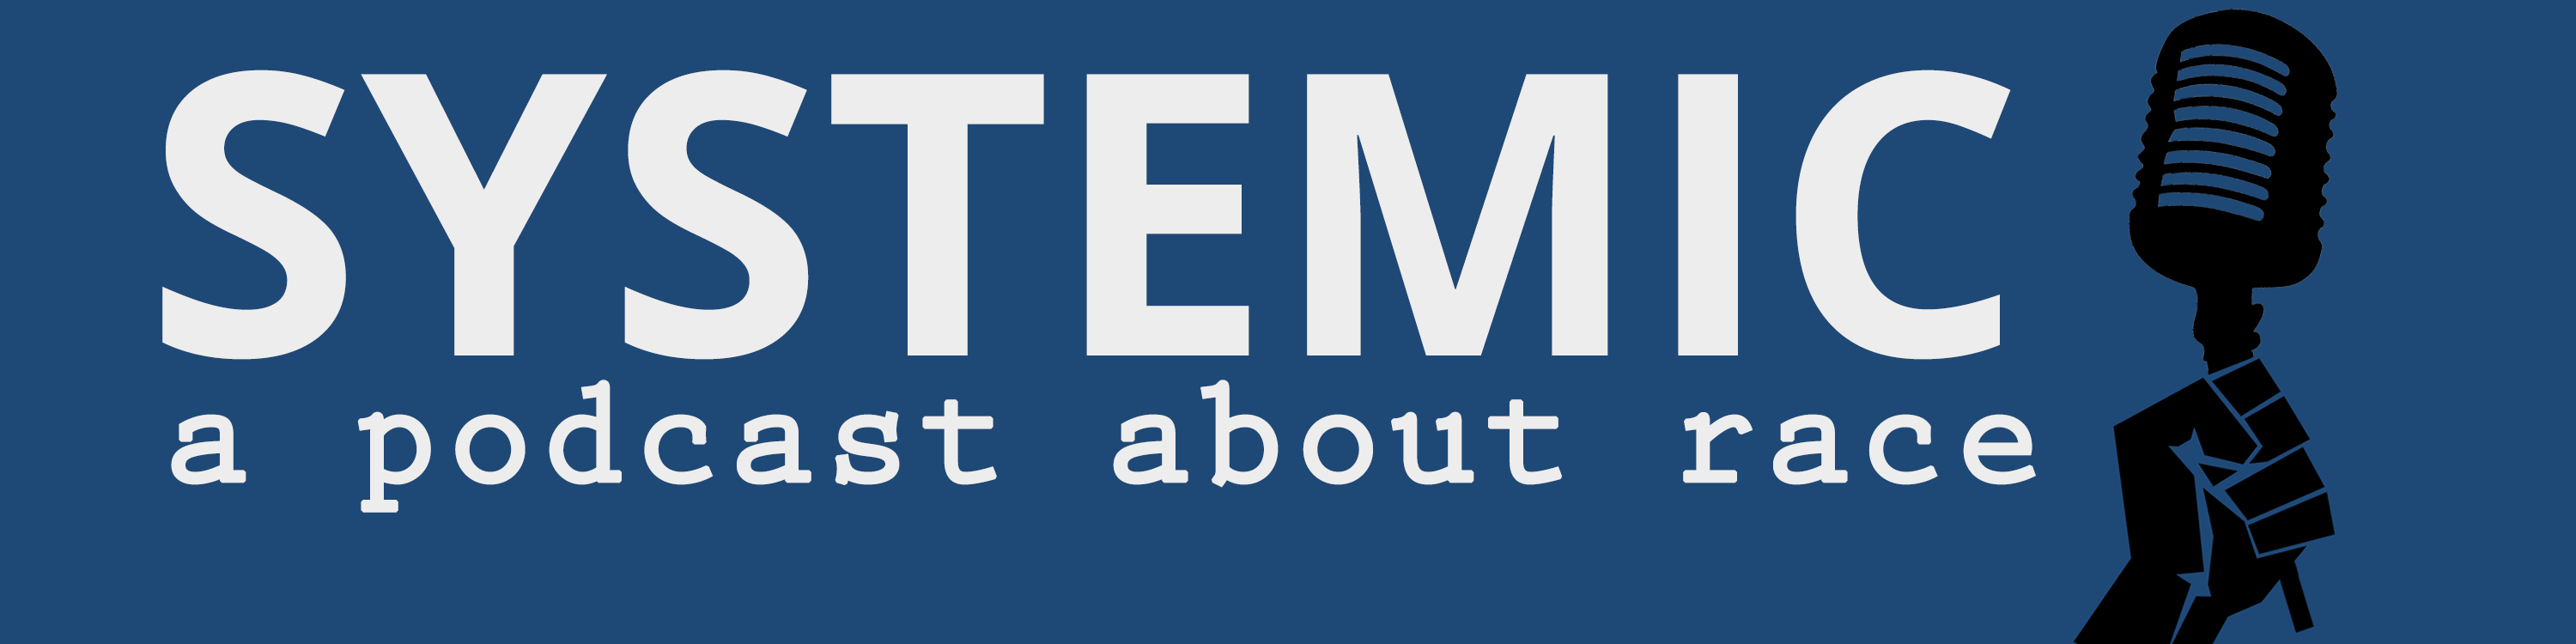 systemic podcast wide logo